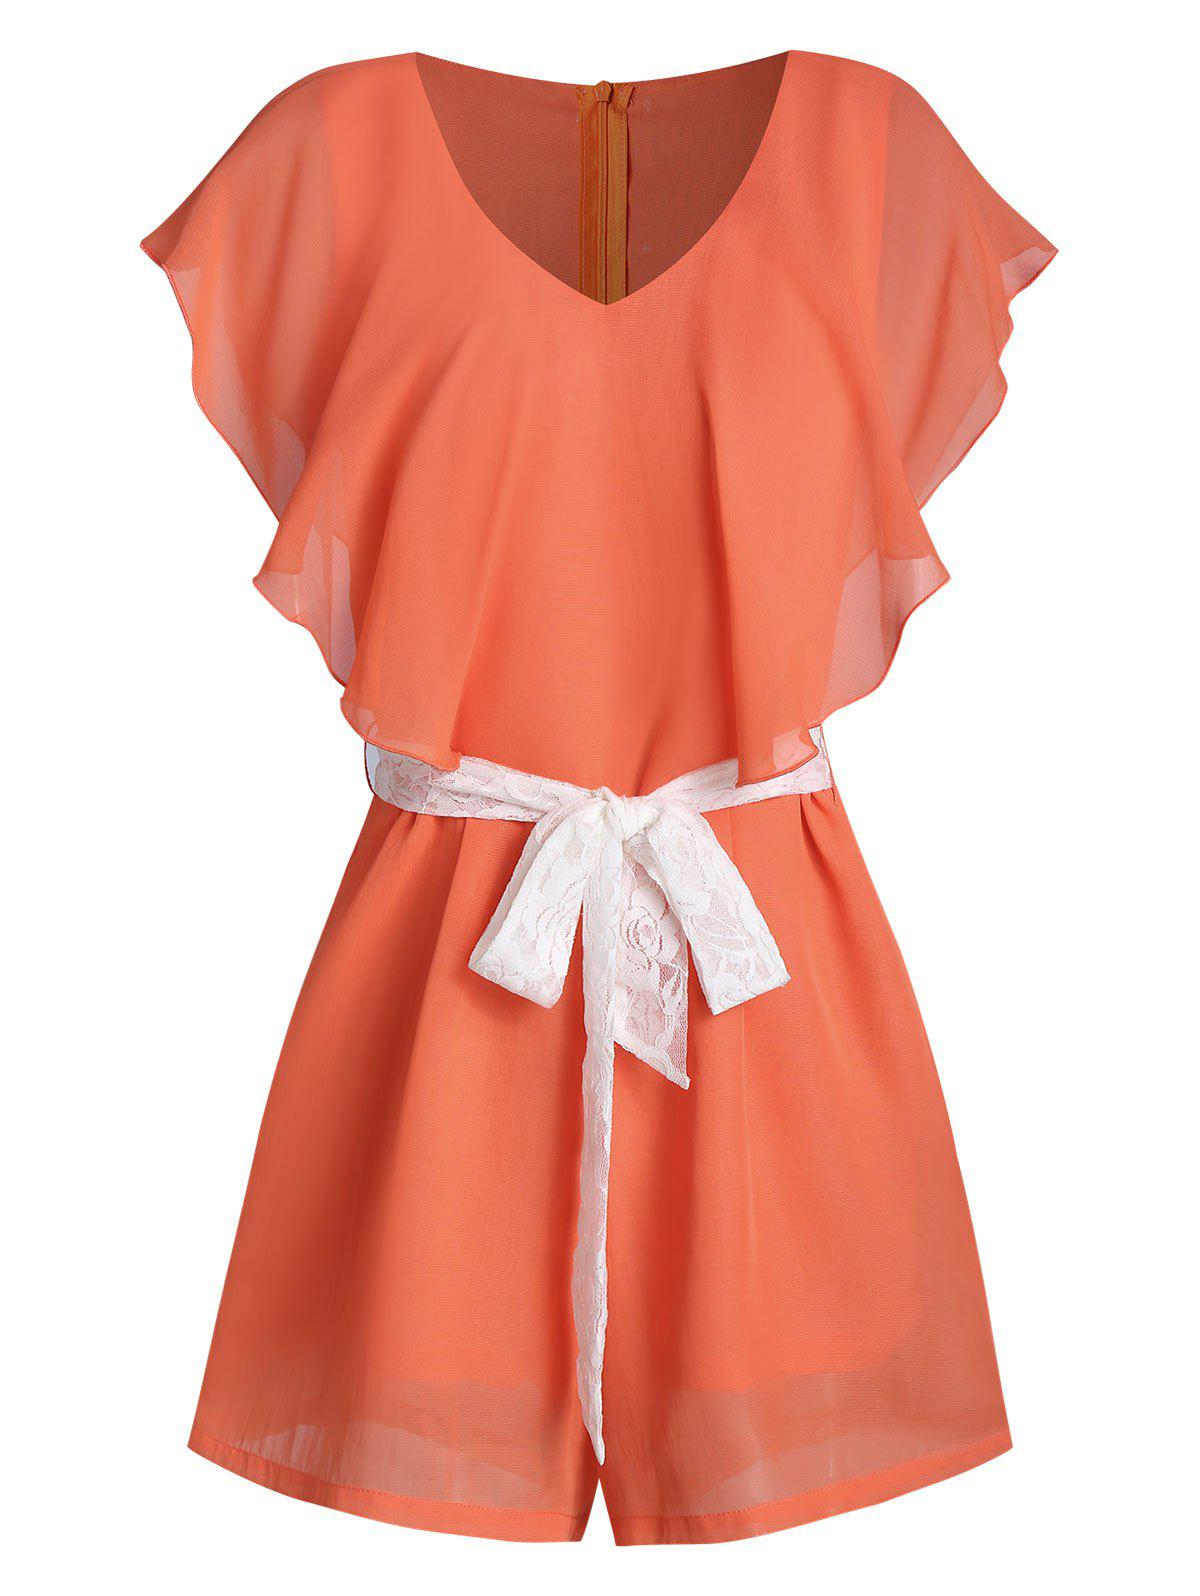 Ruffled V Neck Belted Romper - multicolor A 3XL